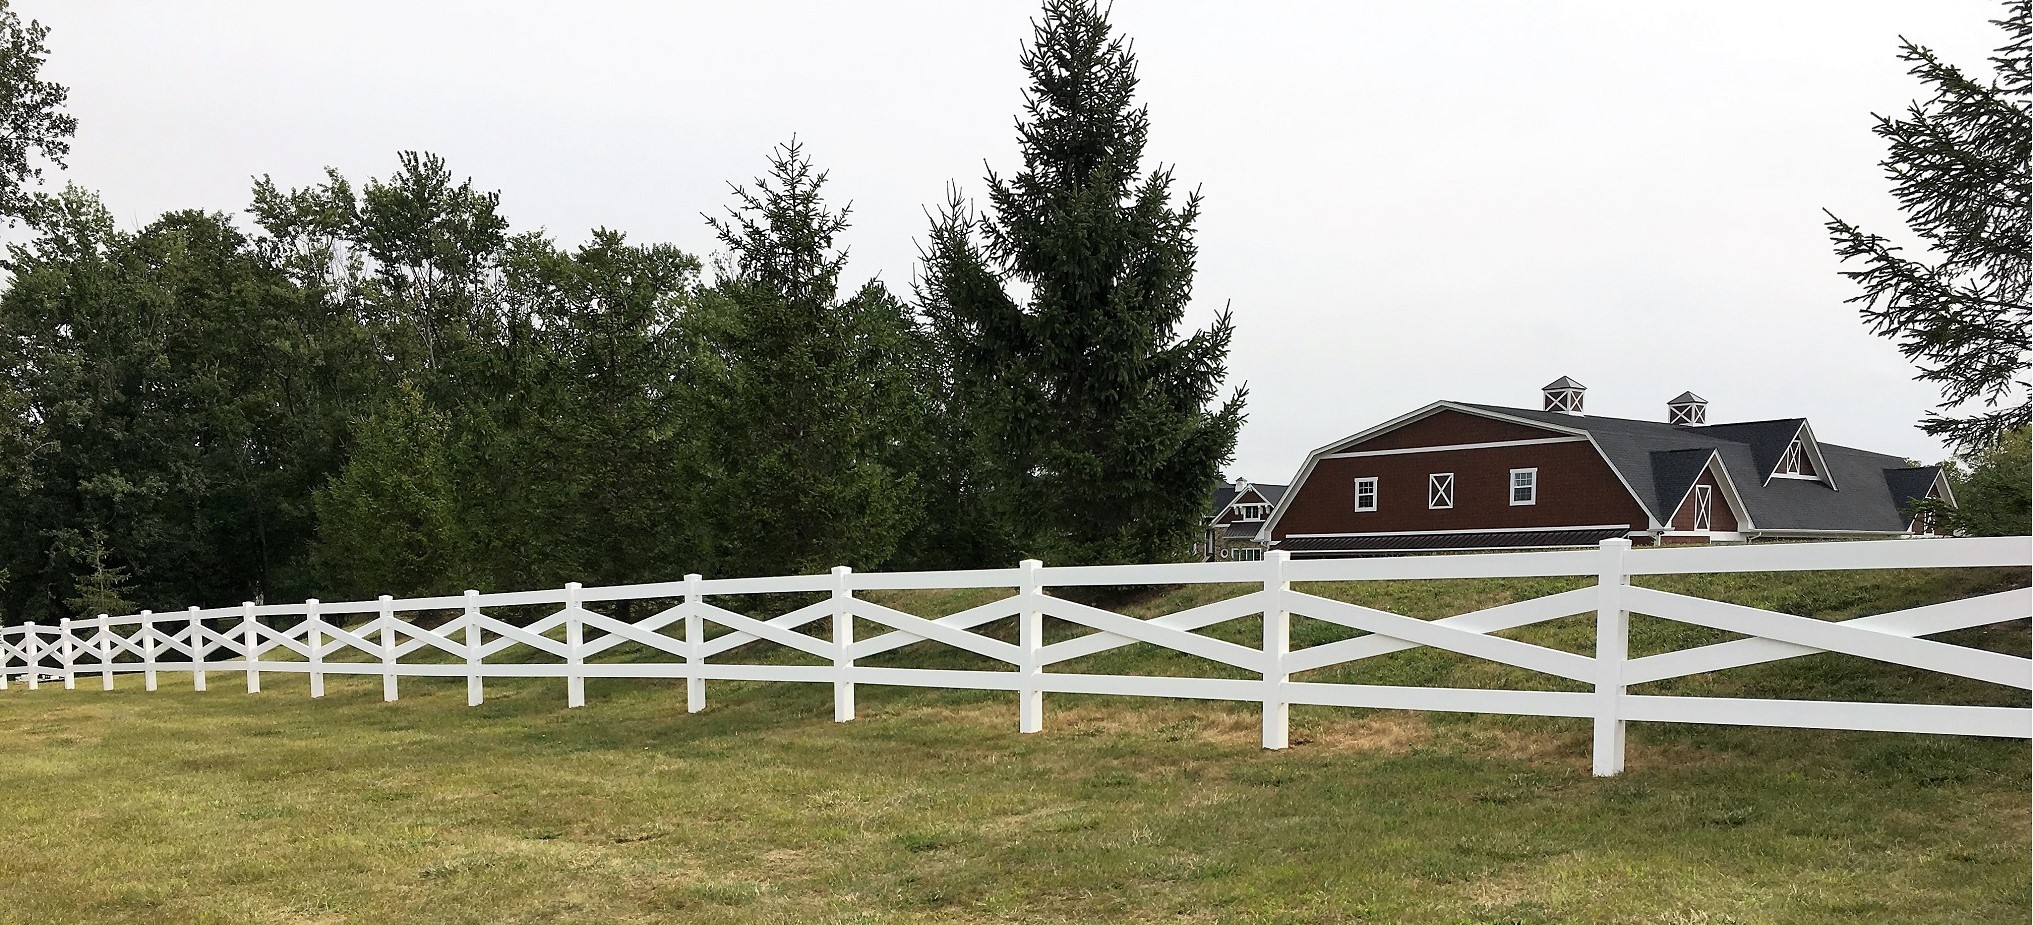 Vinyl Horse Fence, Vinyl Farm Fence, Post and Rail Fence - Fast Ship